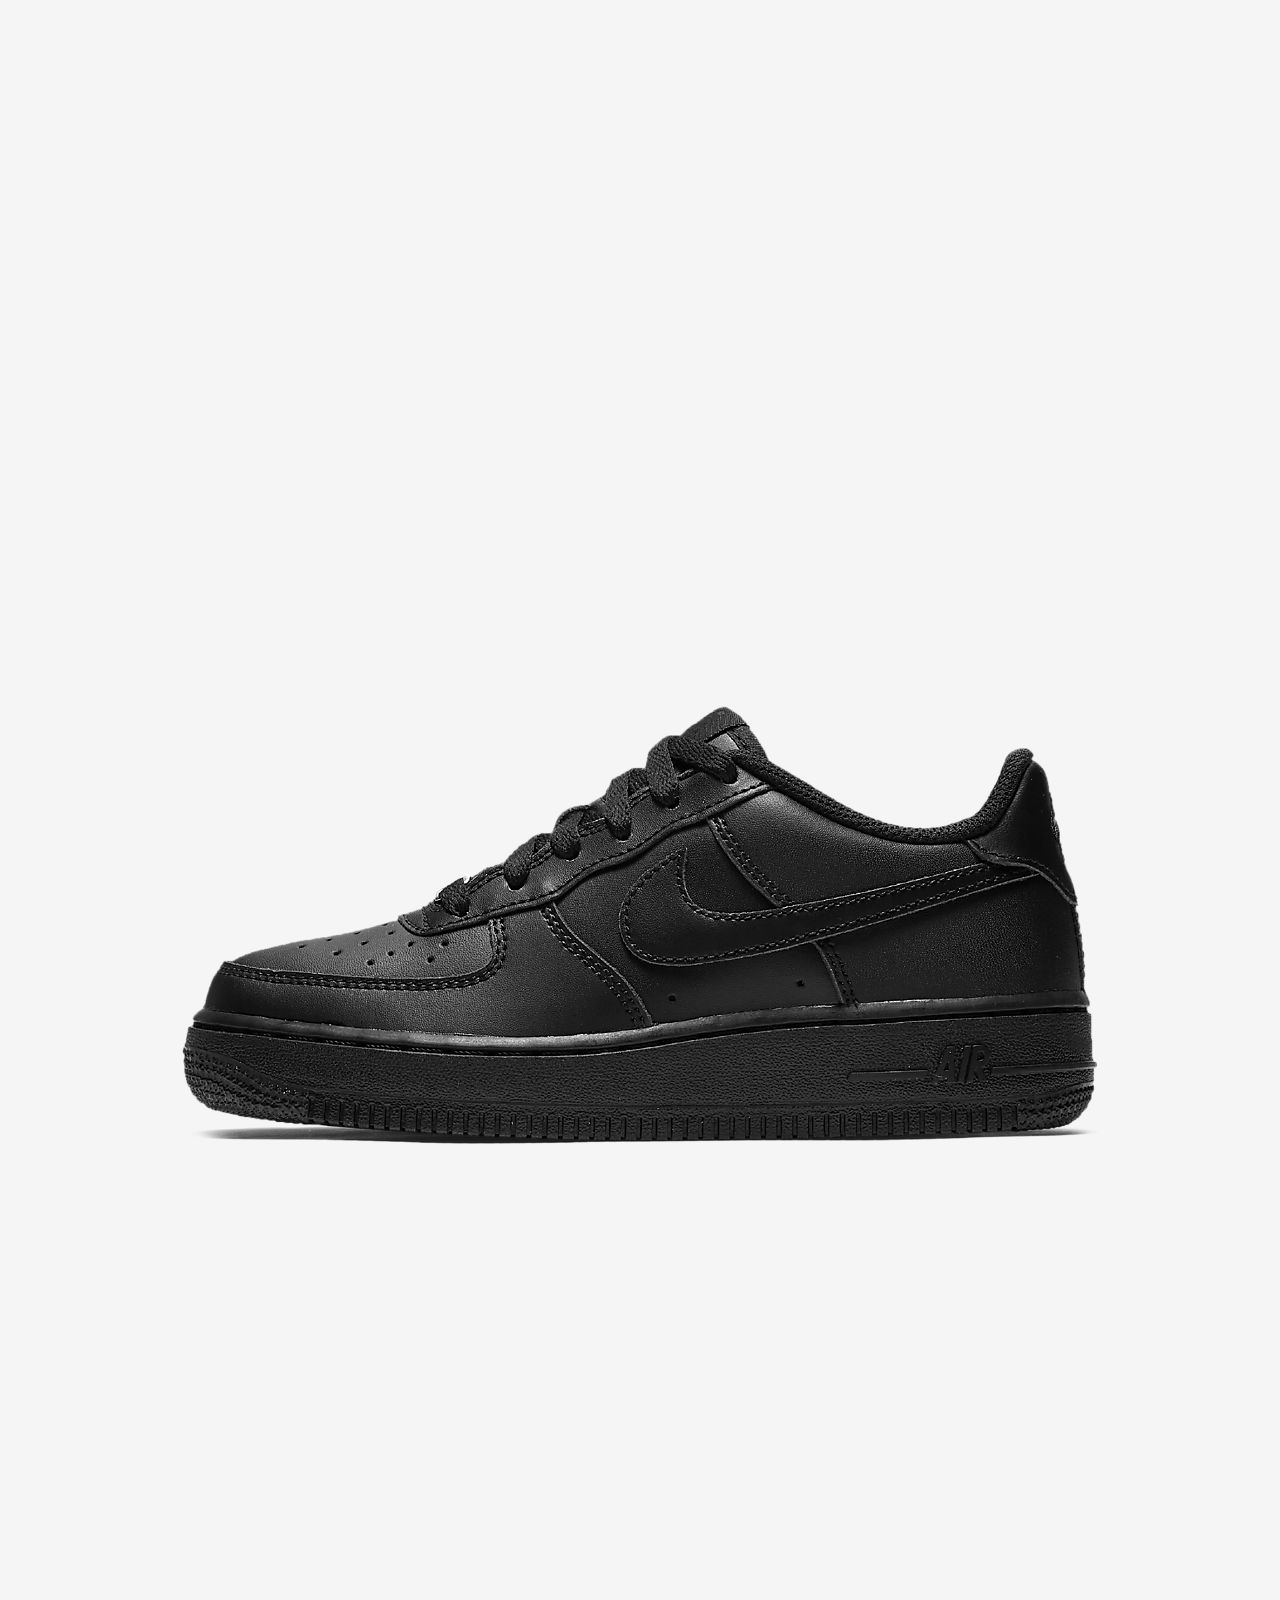 2air force 1 nike